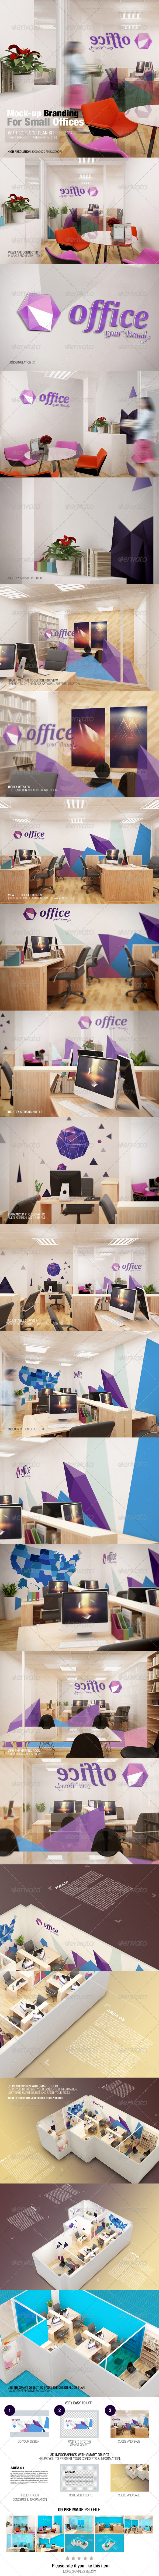 GraphicRiver Mockup Branding For Small Offices 7688046